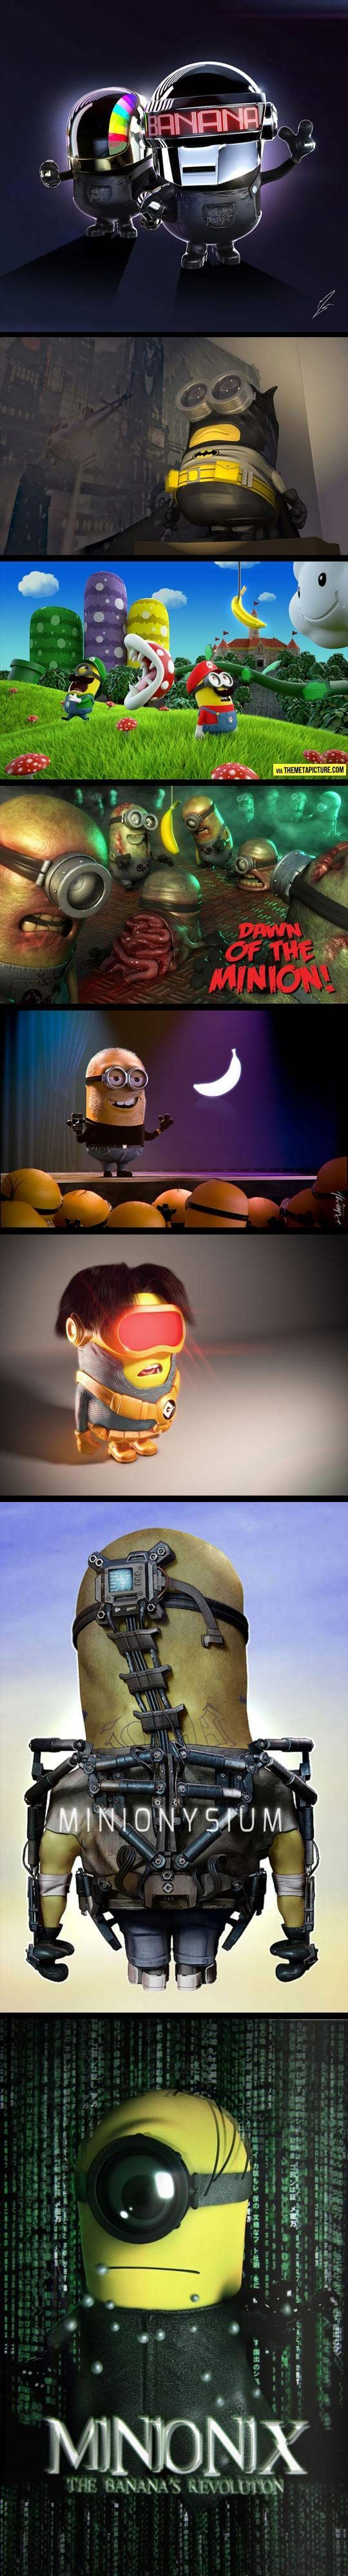 Minions... Minions Everywhere - OhGizmo!